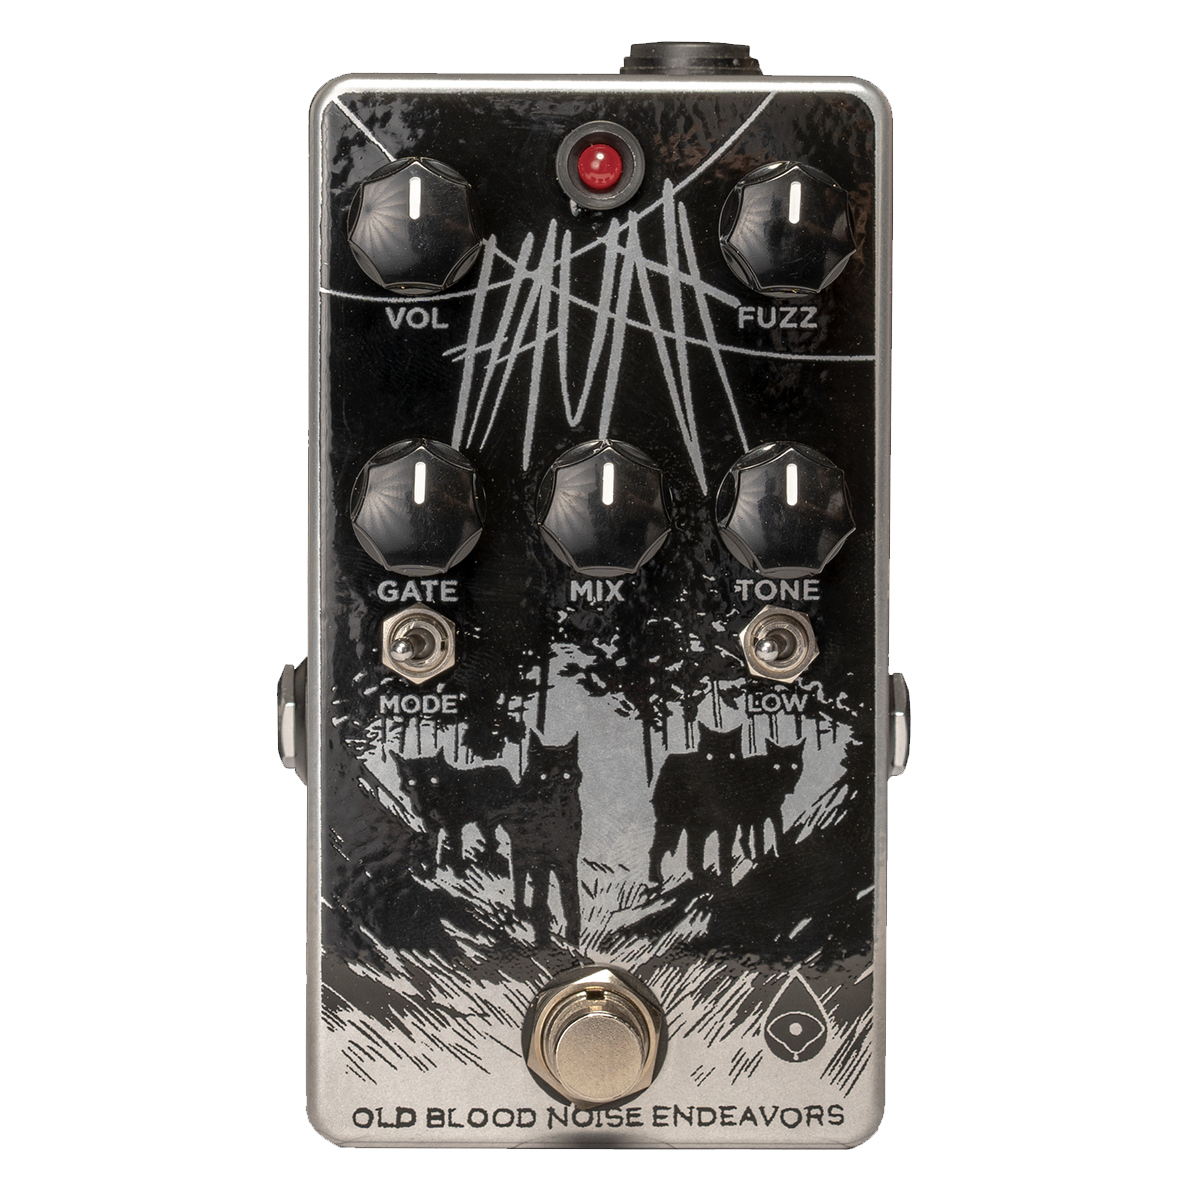 Old Blood Noise Endeavors - Haunt Fuzz V2